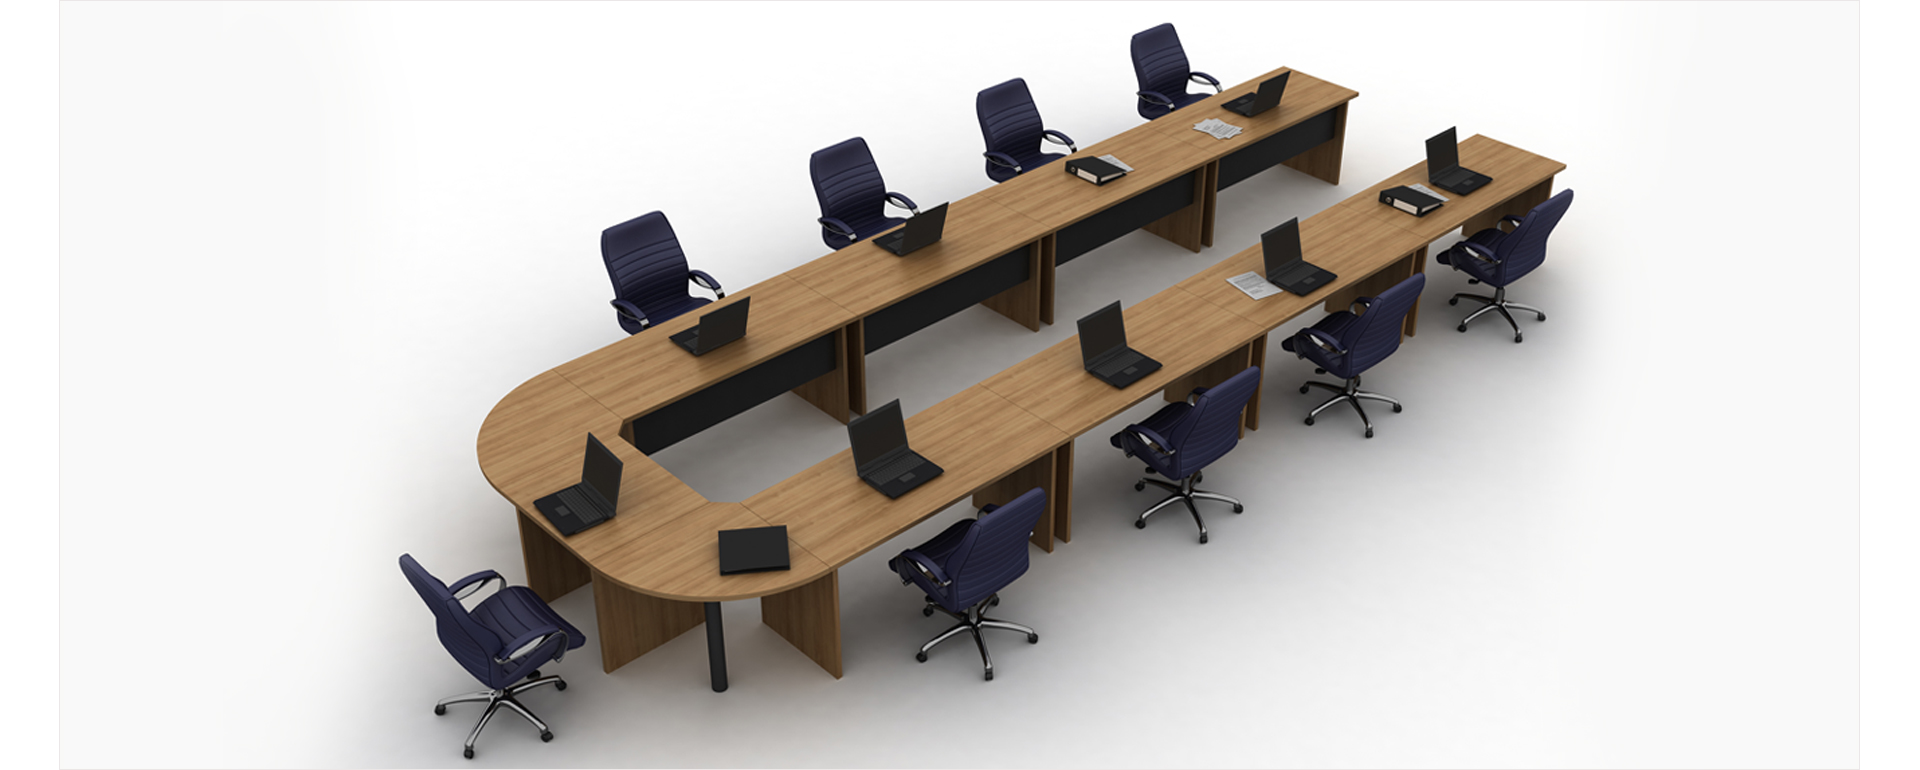 Sell Offer Conference Tables Up To 8 People Seaters